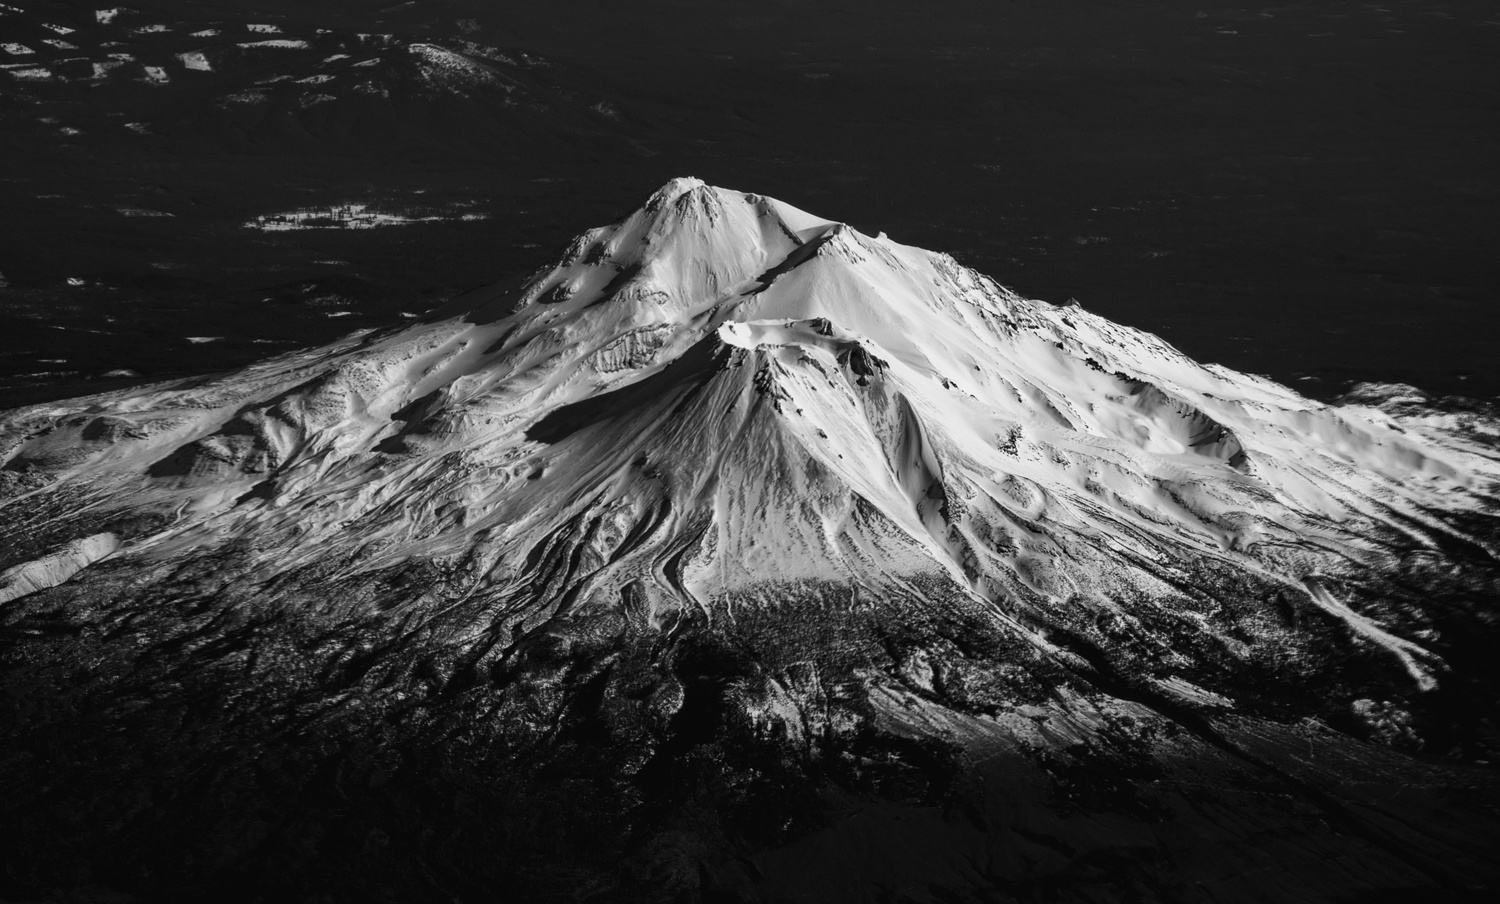 Mount Shasta by Devin Martino-Atsatt